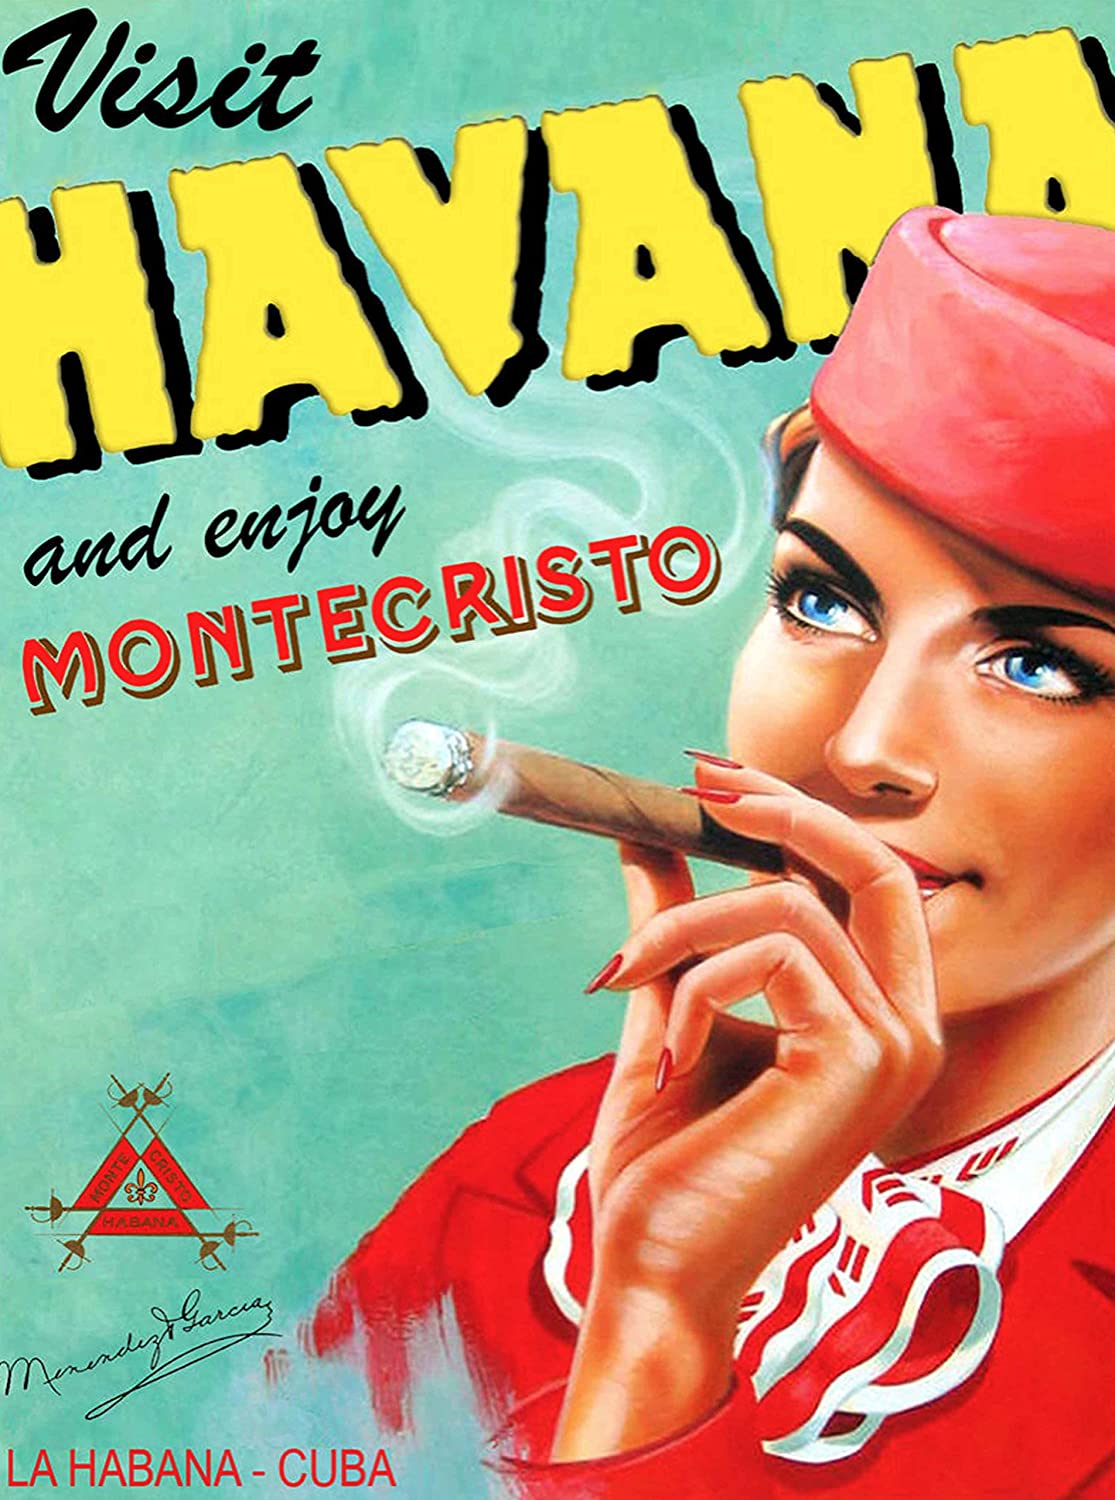 A SLICE IN TIME Visit Havana Cuba Cuban Habana Montecristo Cigar Caribbean Vintage Travel Advertisement Art Home Decoration Collectible Wall Decor Poster Print. Measures 10 x 13.5 inches